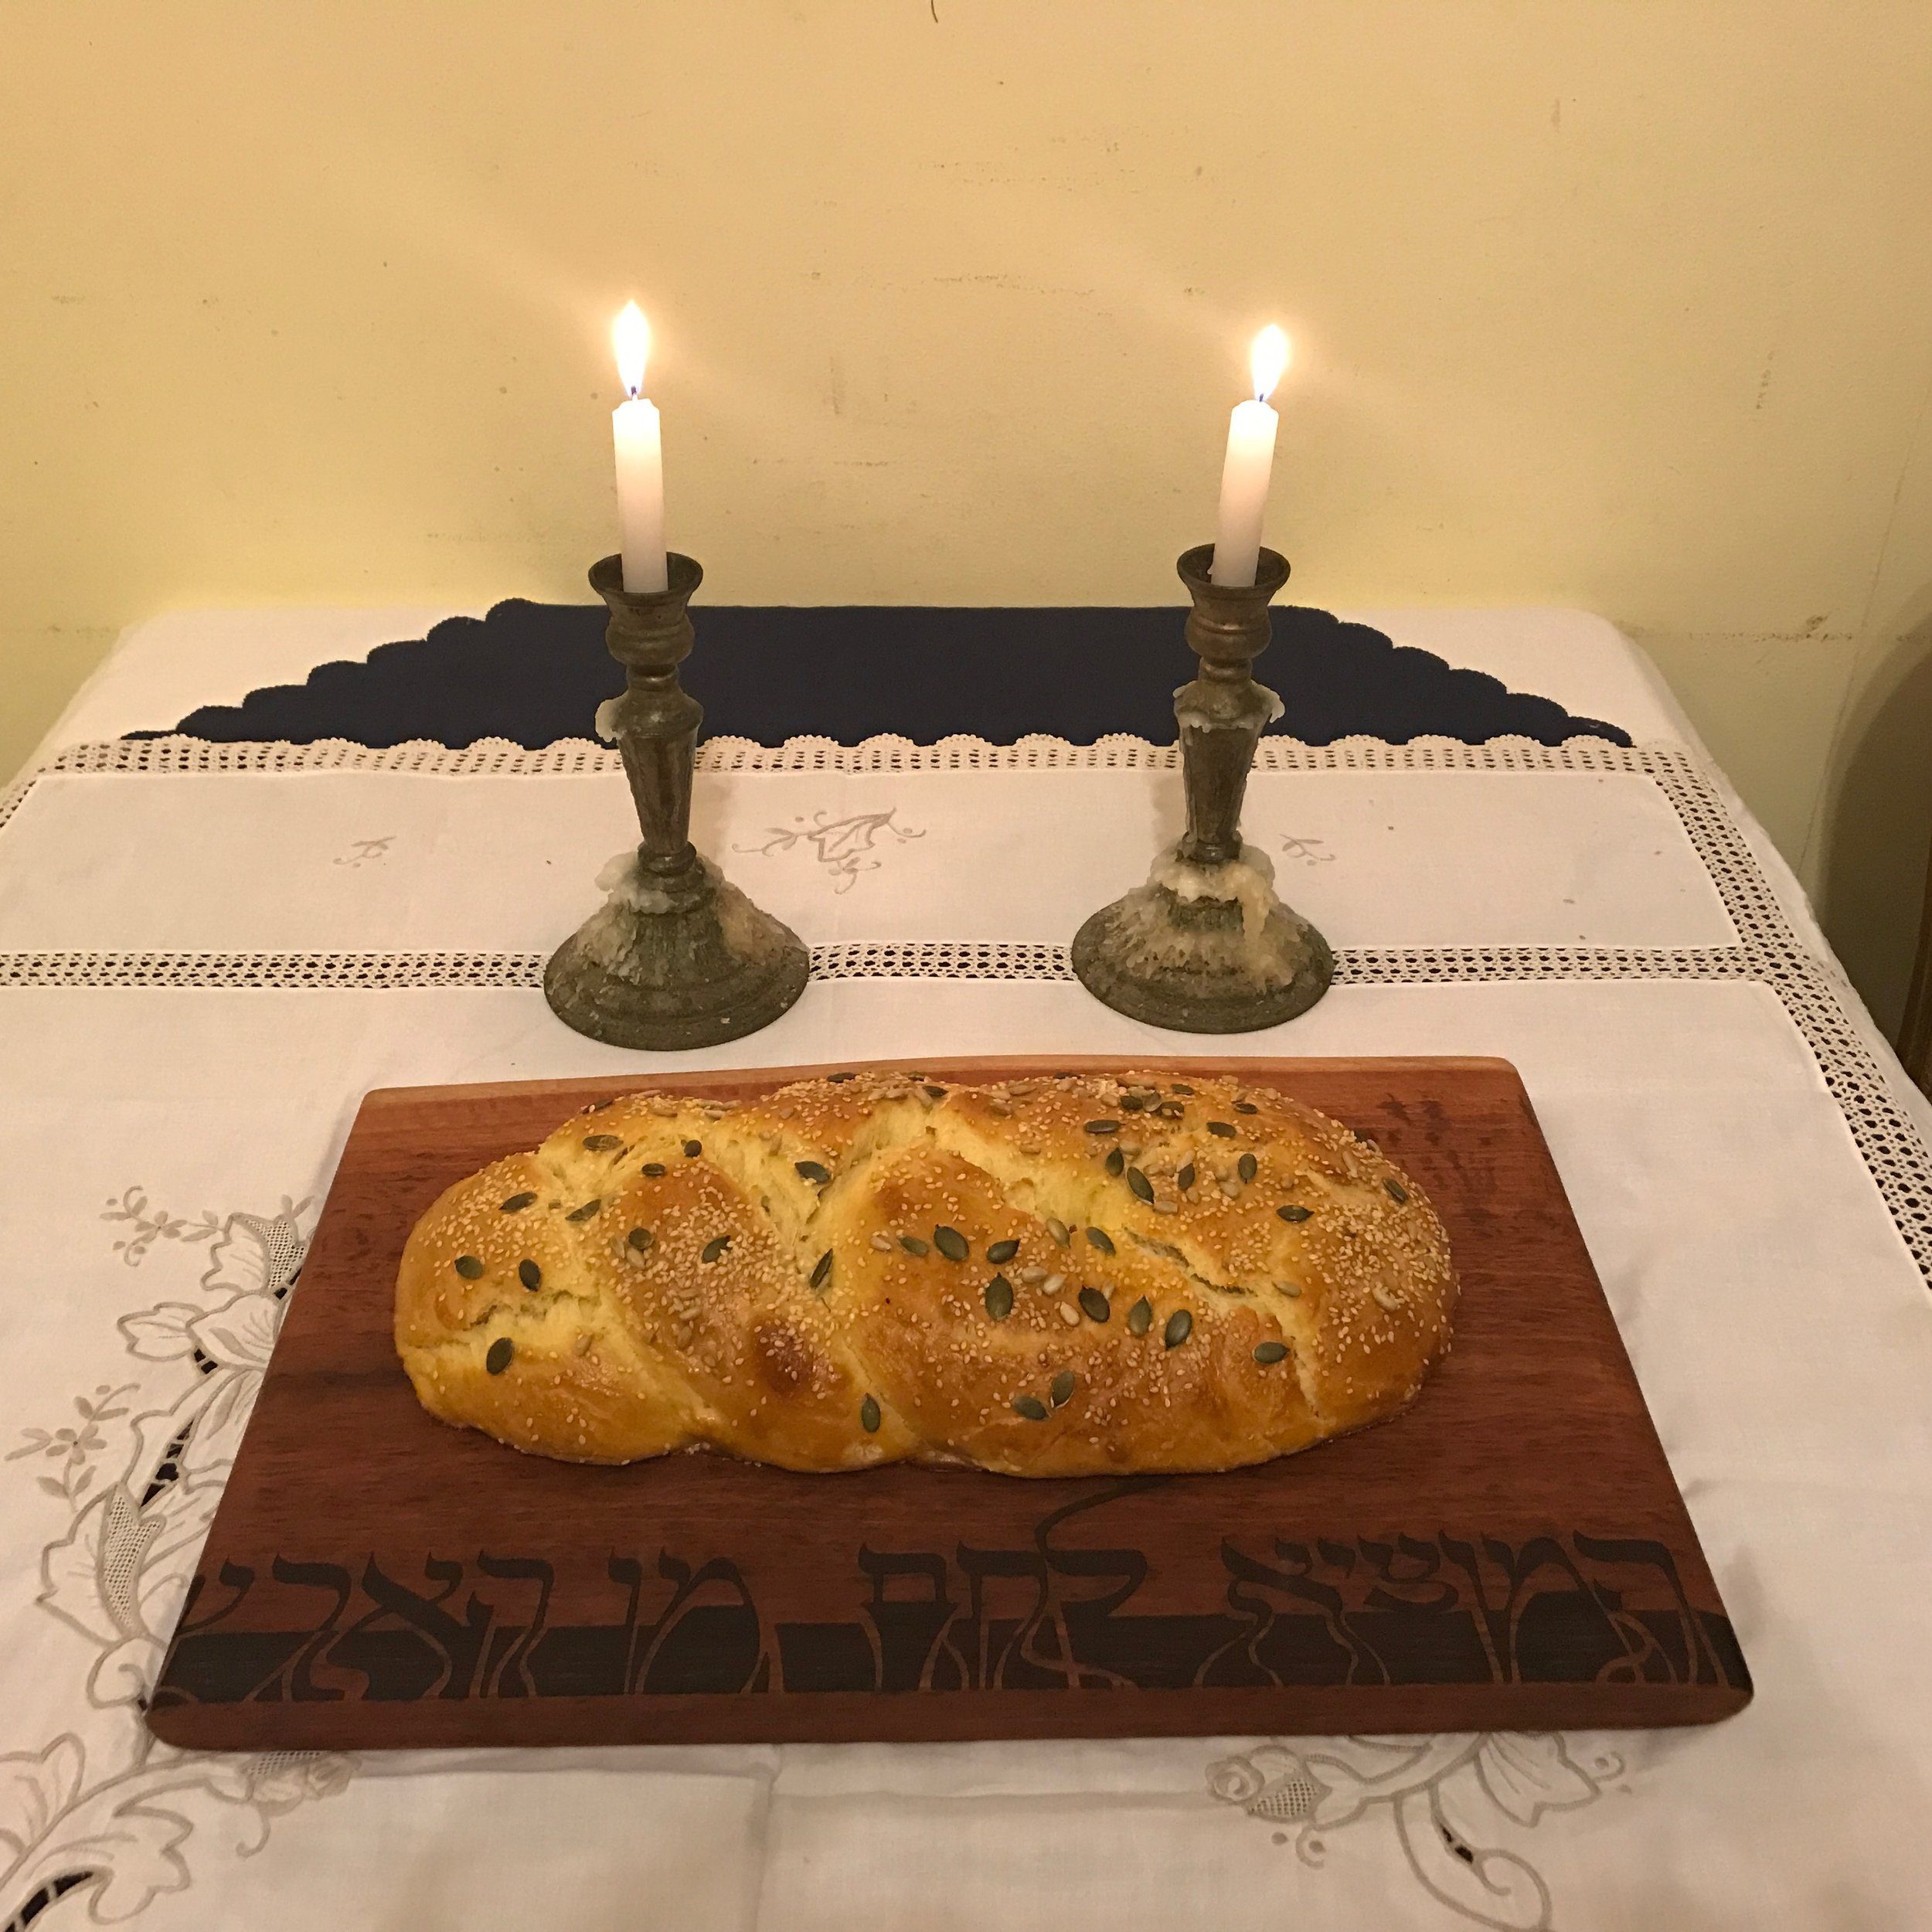 Shabbat Shalom Bread Board with home made challah